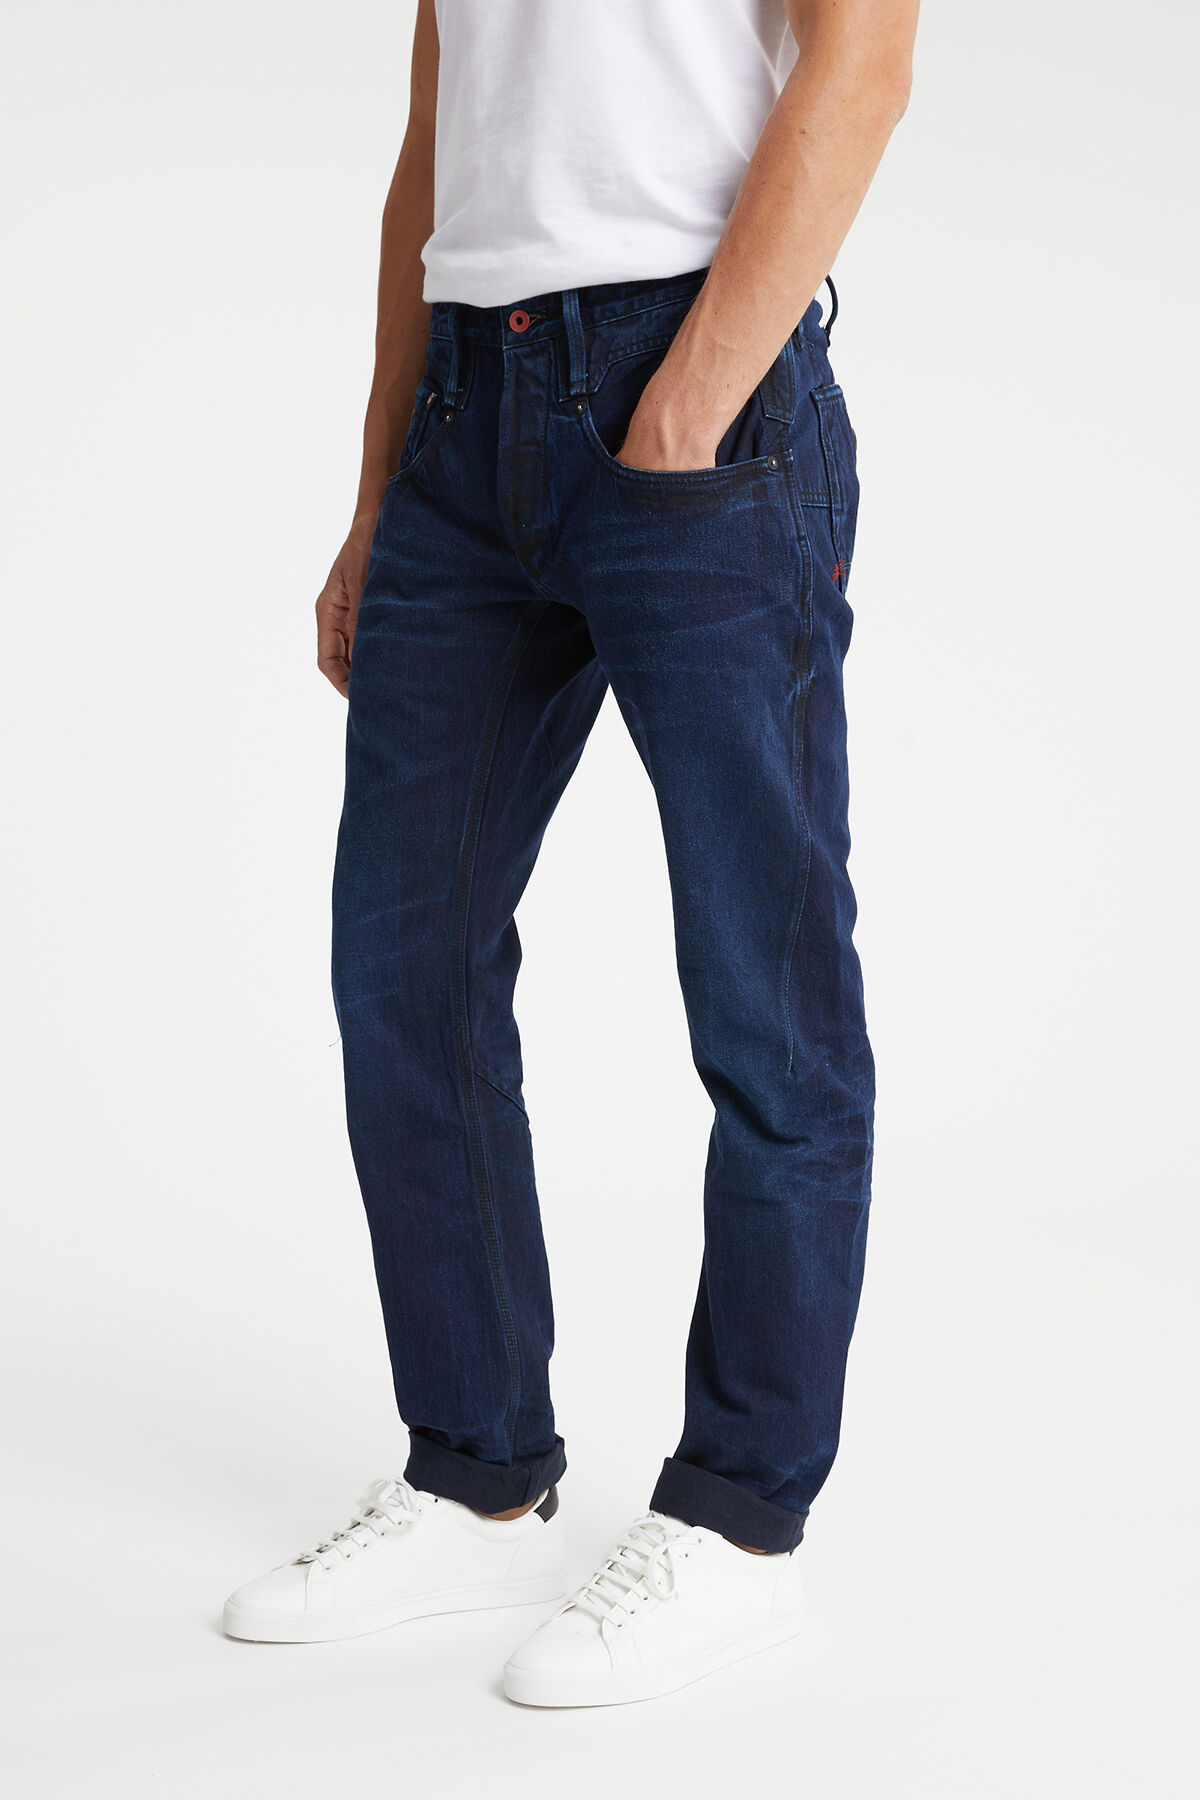 CROSSBACK Double-dyed Indigo Denim - Carrot Fit